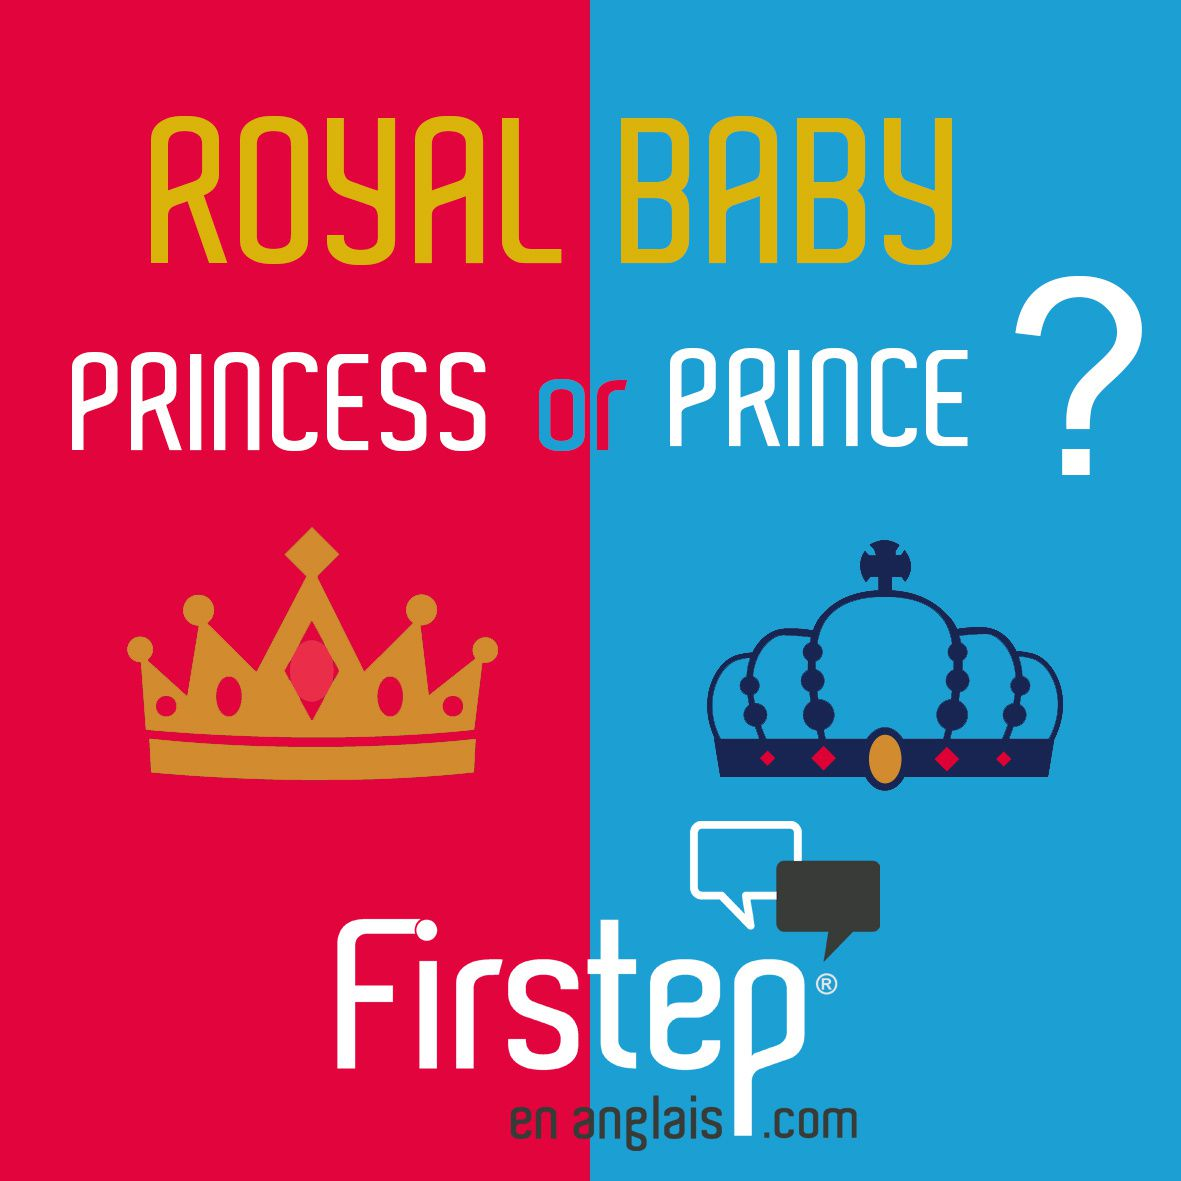 Royal Baby jeu concours